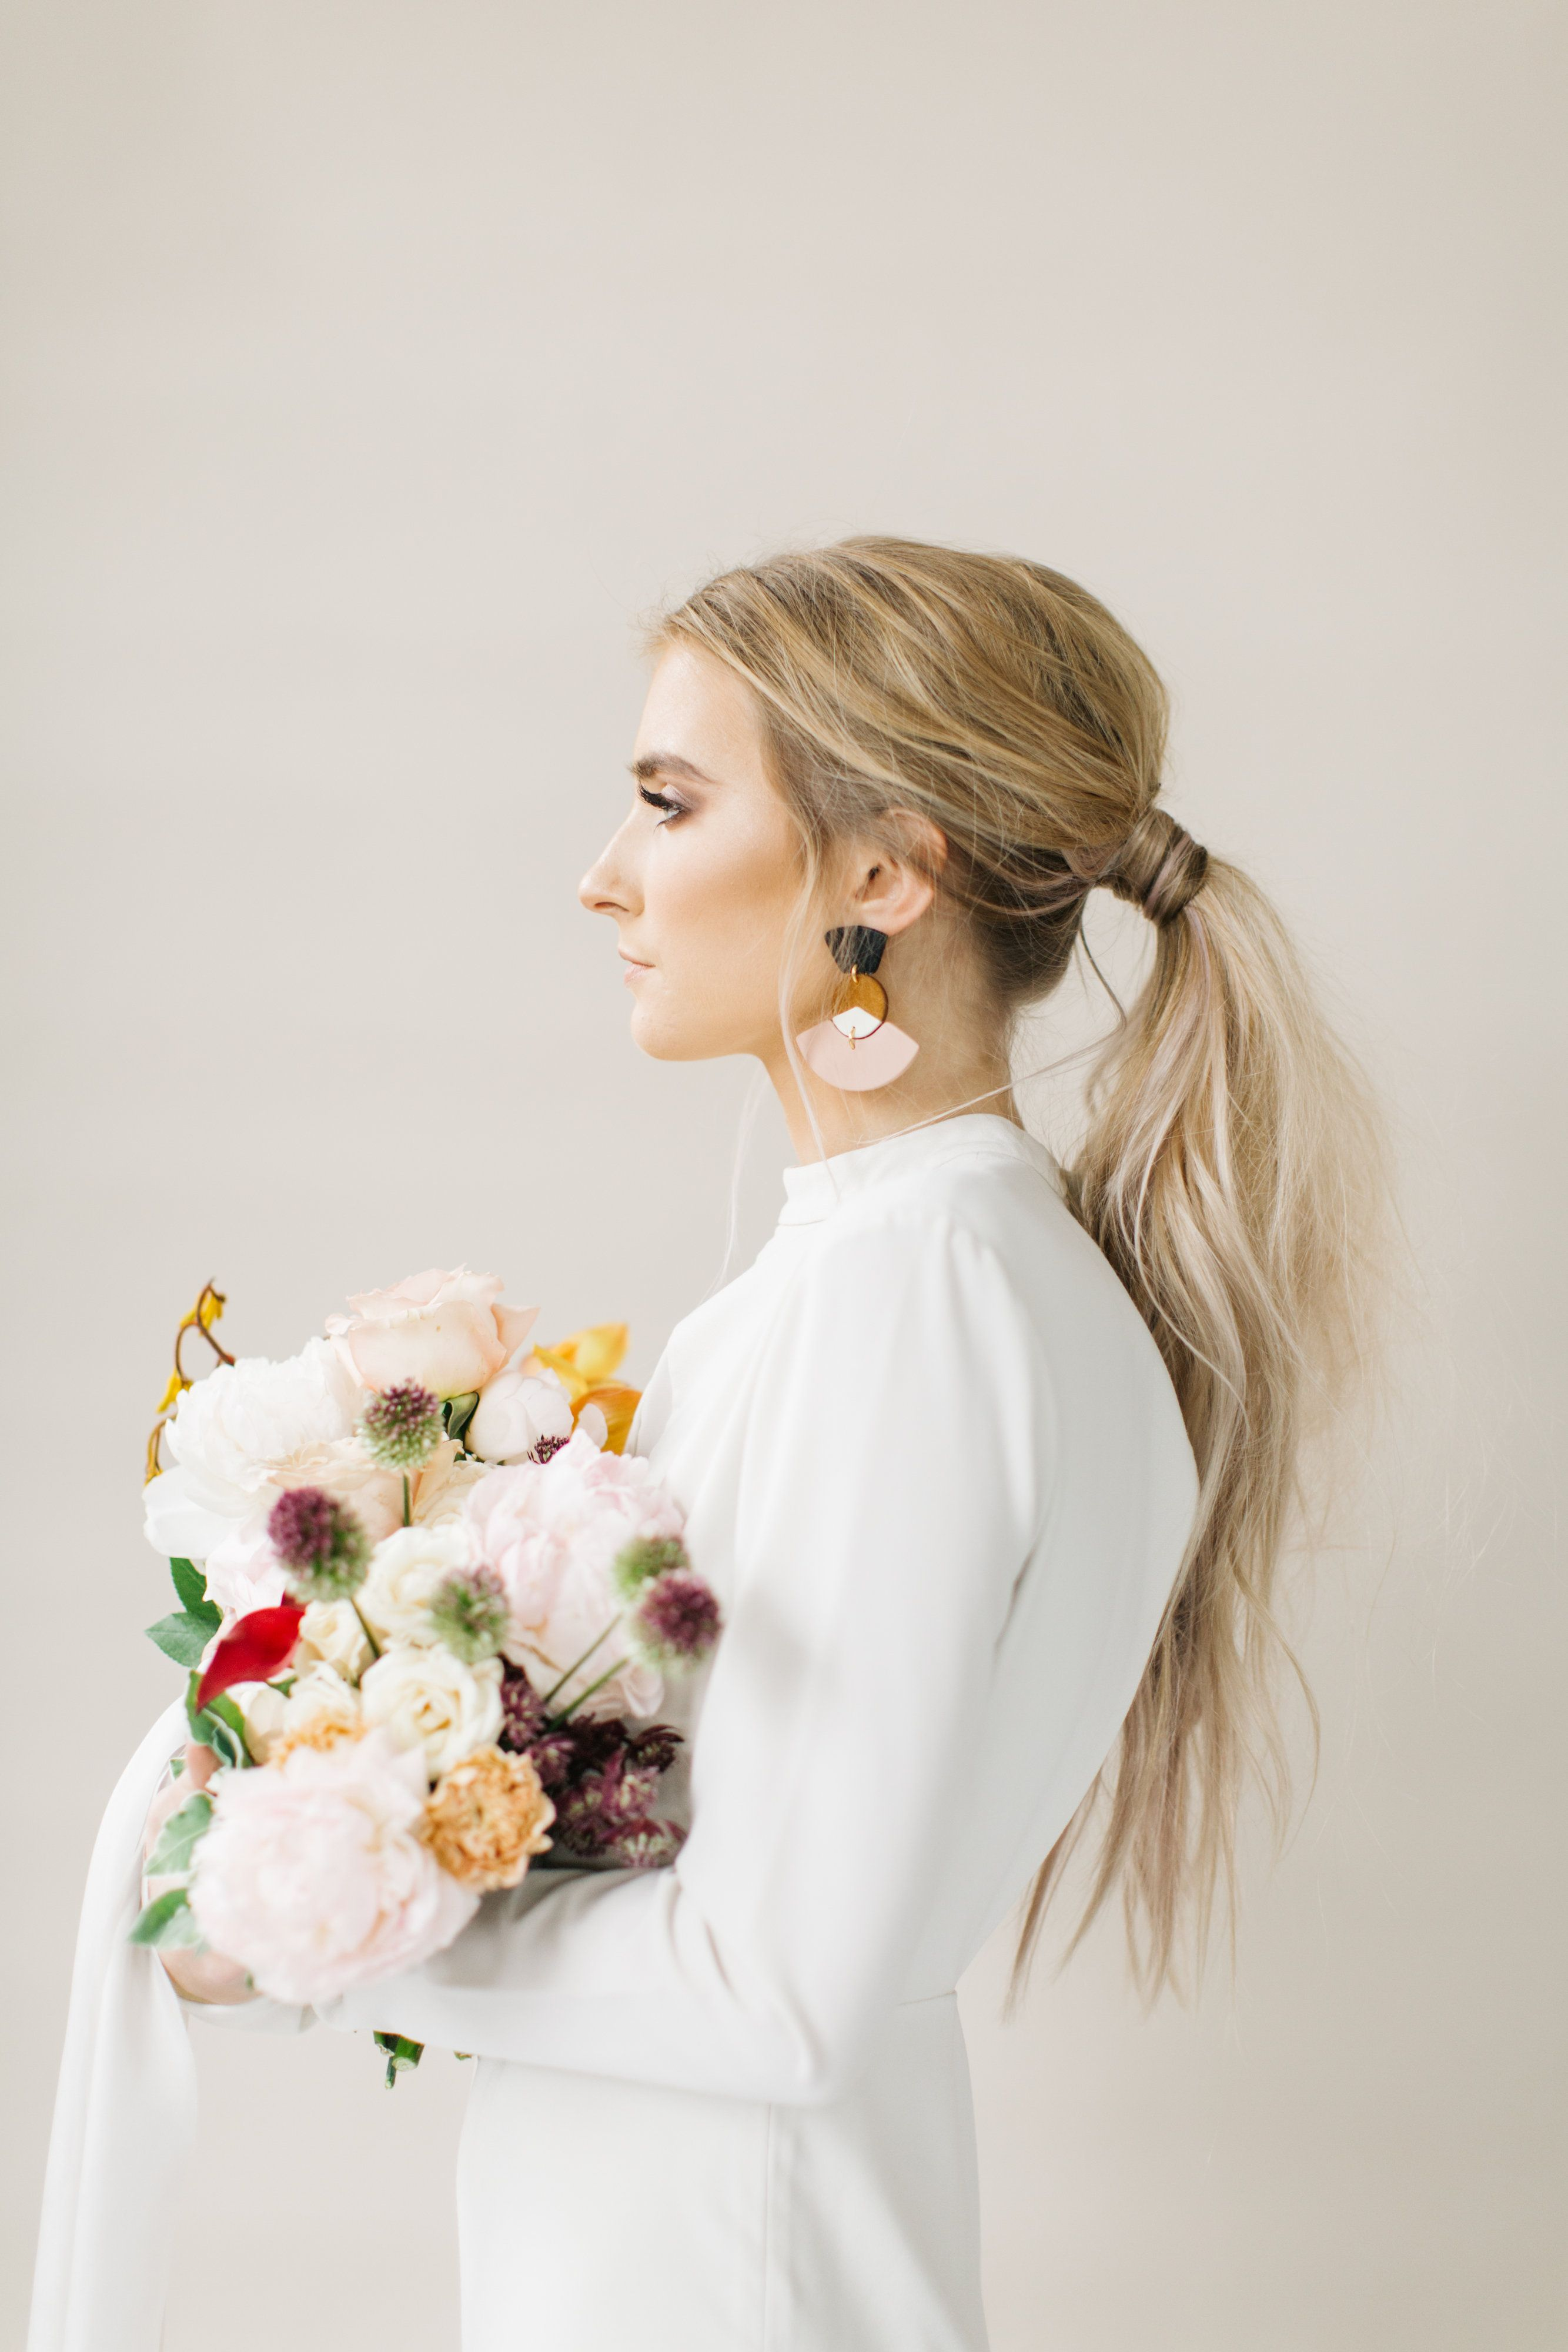 Bridal Makeup Tips! How to Achieve The Modern Day Romantic Look ...